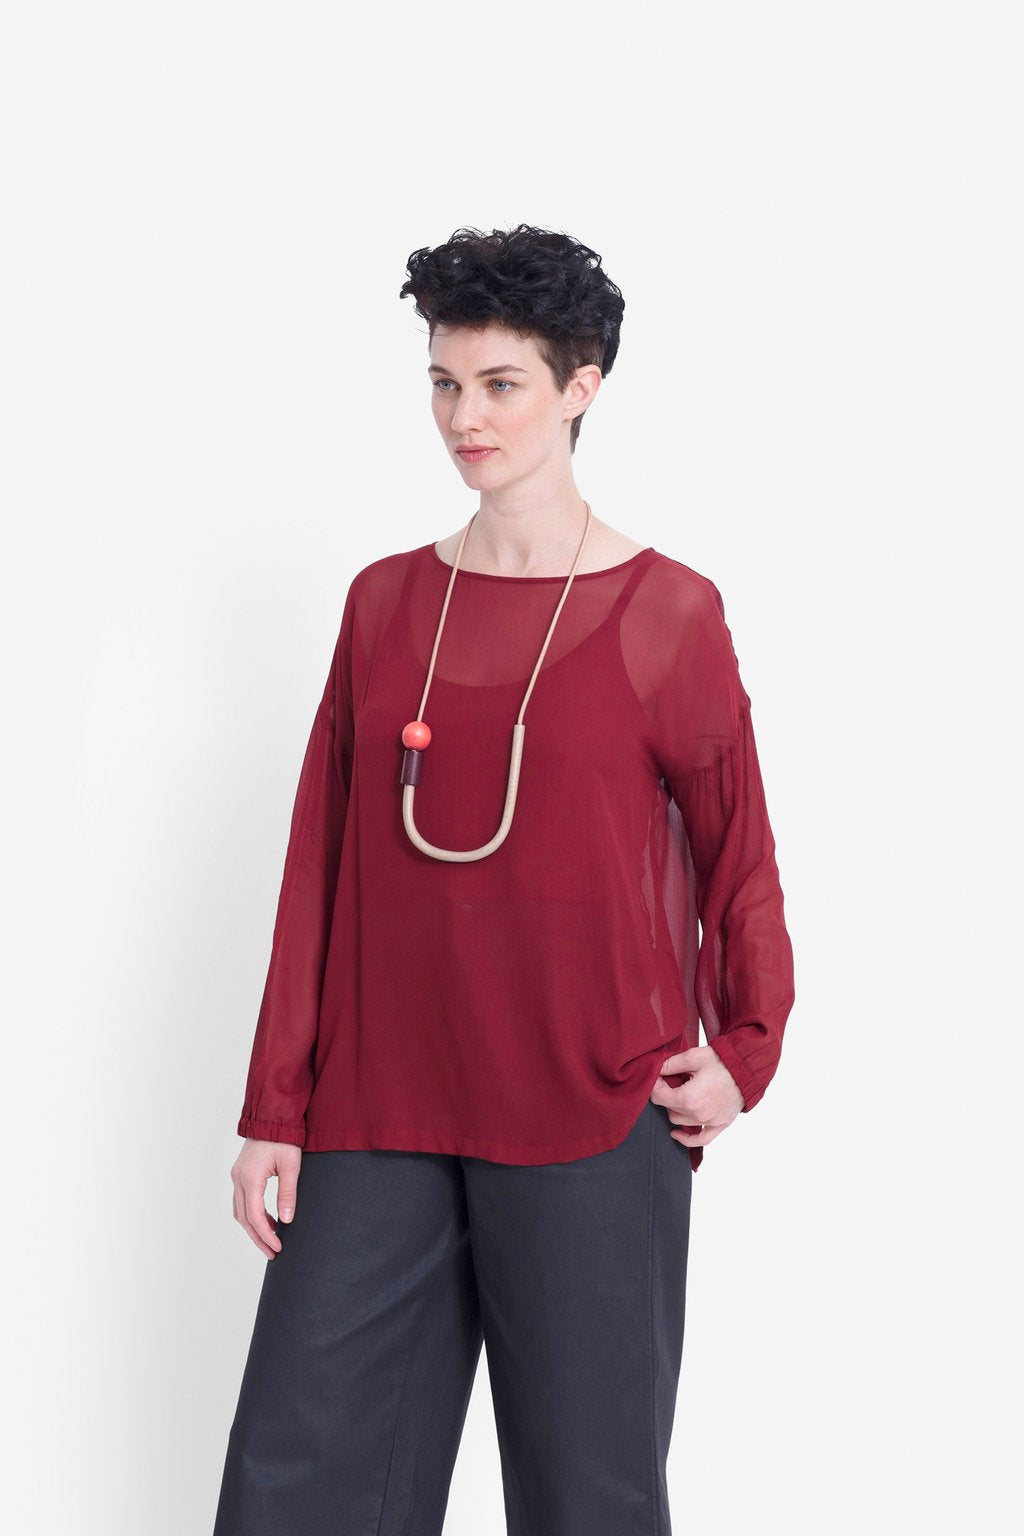 Elk Catja Sheer Top A3418R  Red Rust